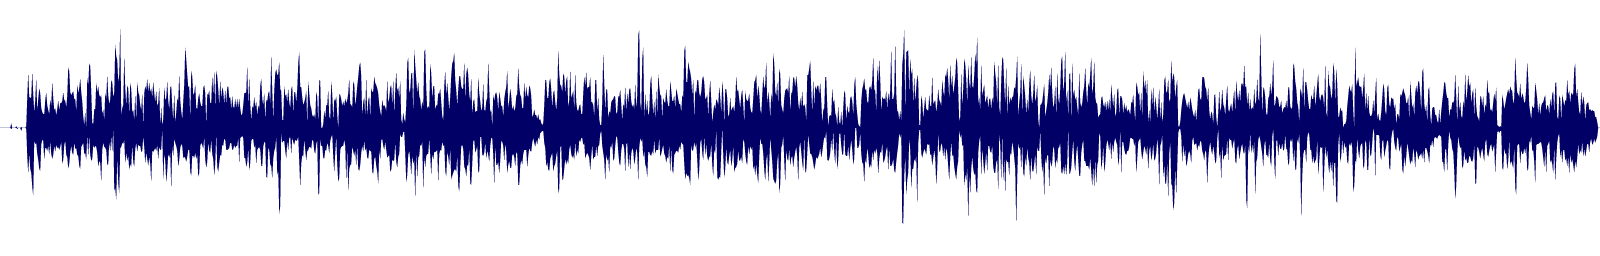 waveform of track #151791